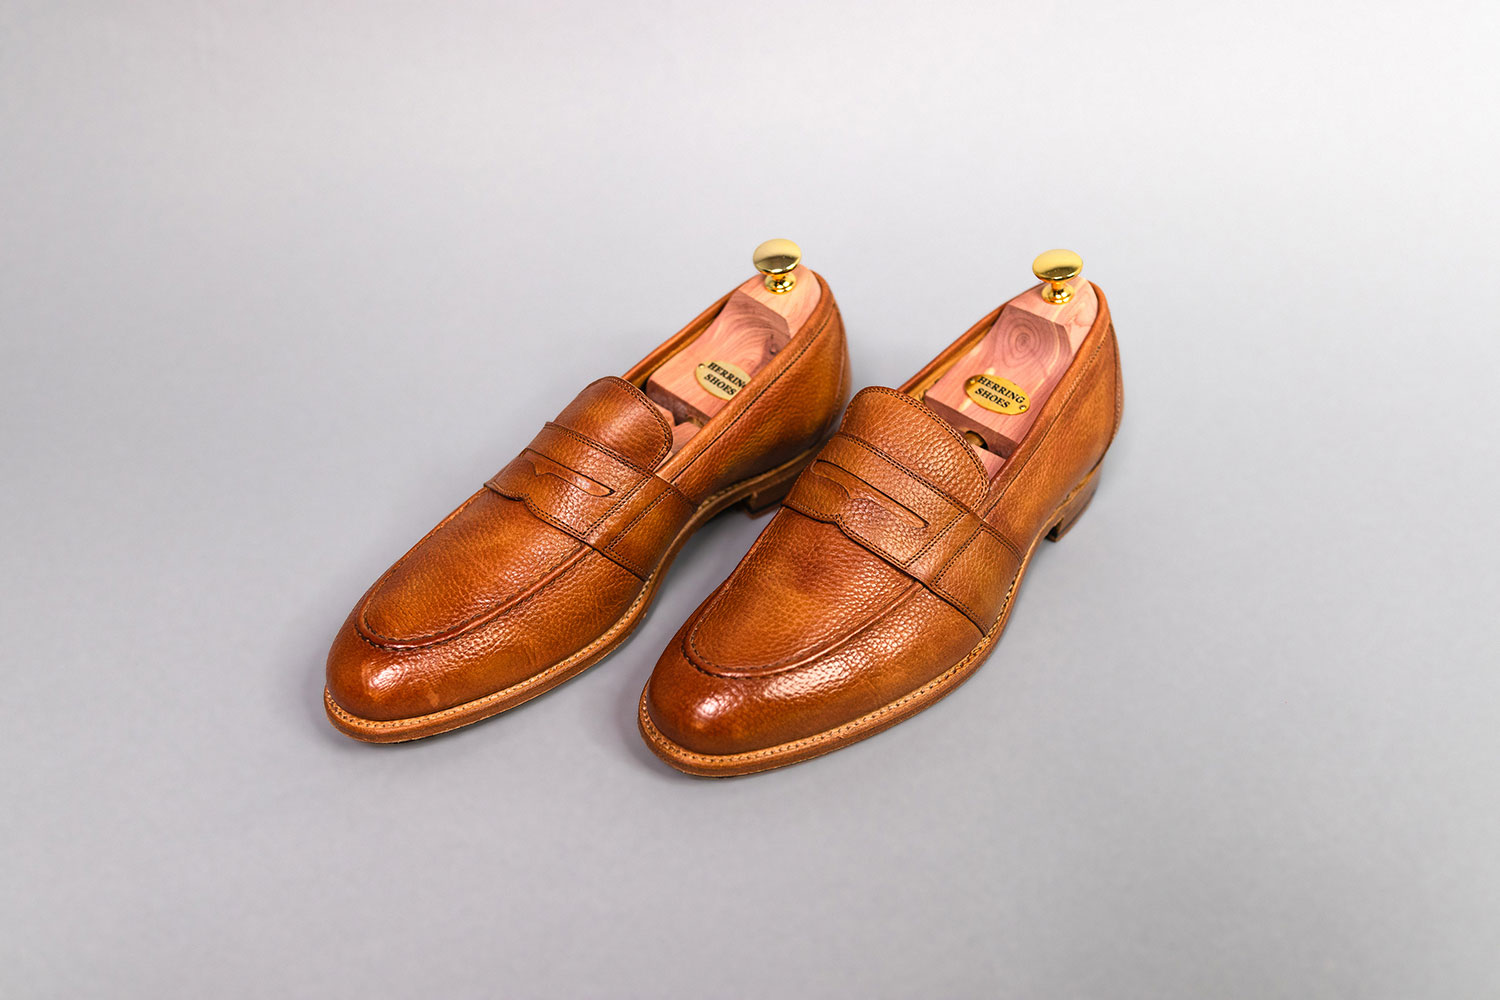 tan leather loafers from Herring facing left on gray background